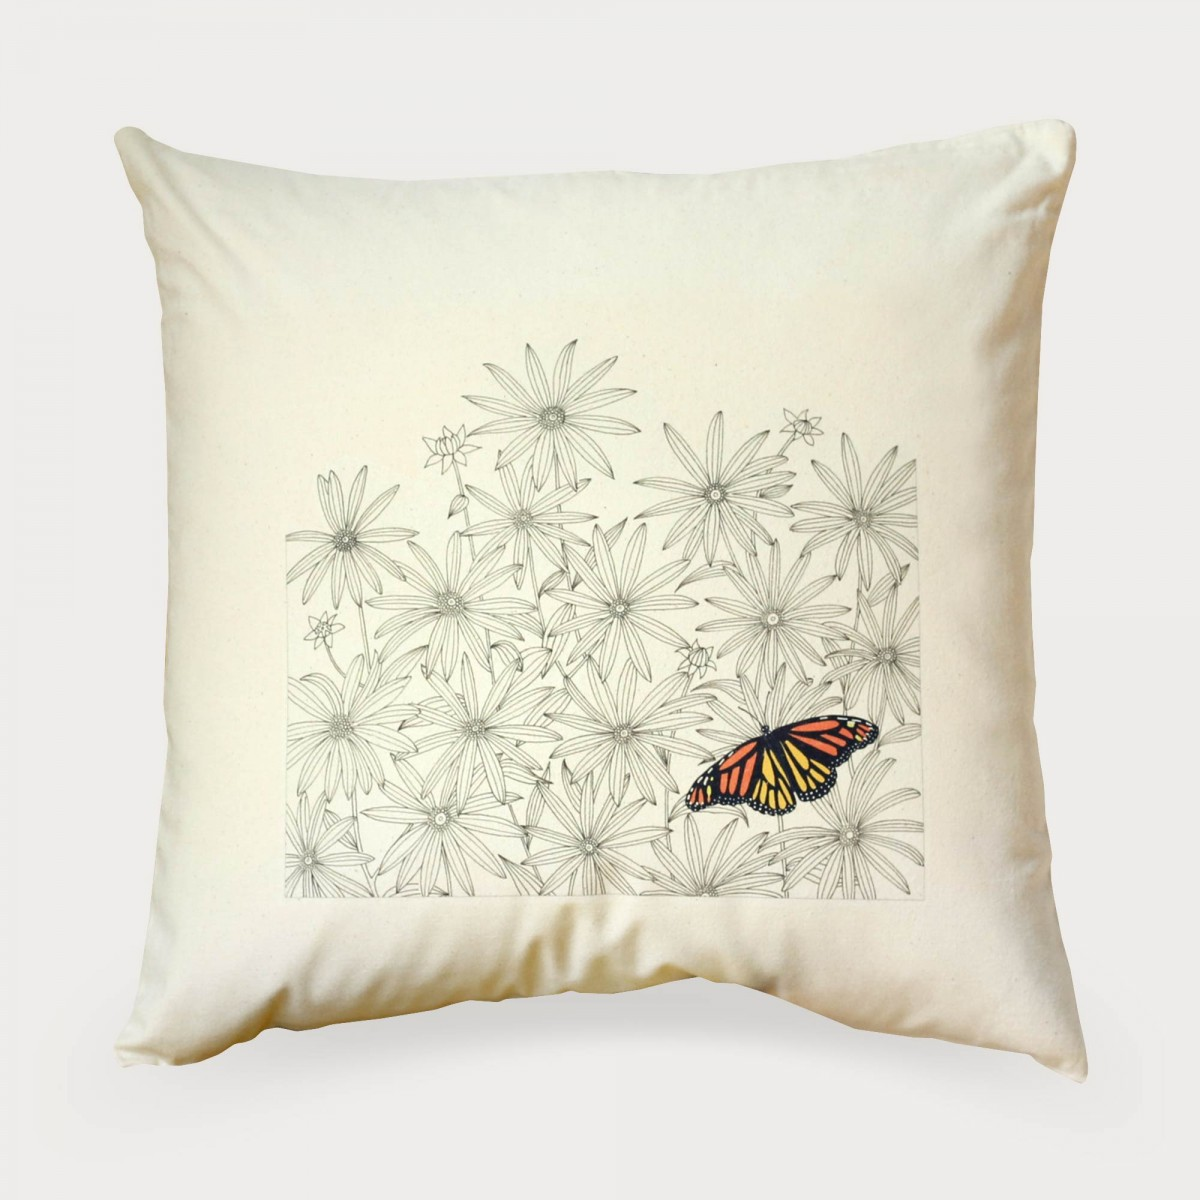 Daisies And Butterfly Flower Floral Cushion Cover